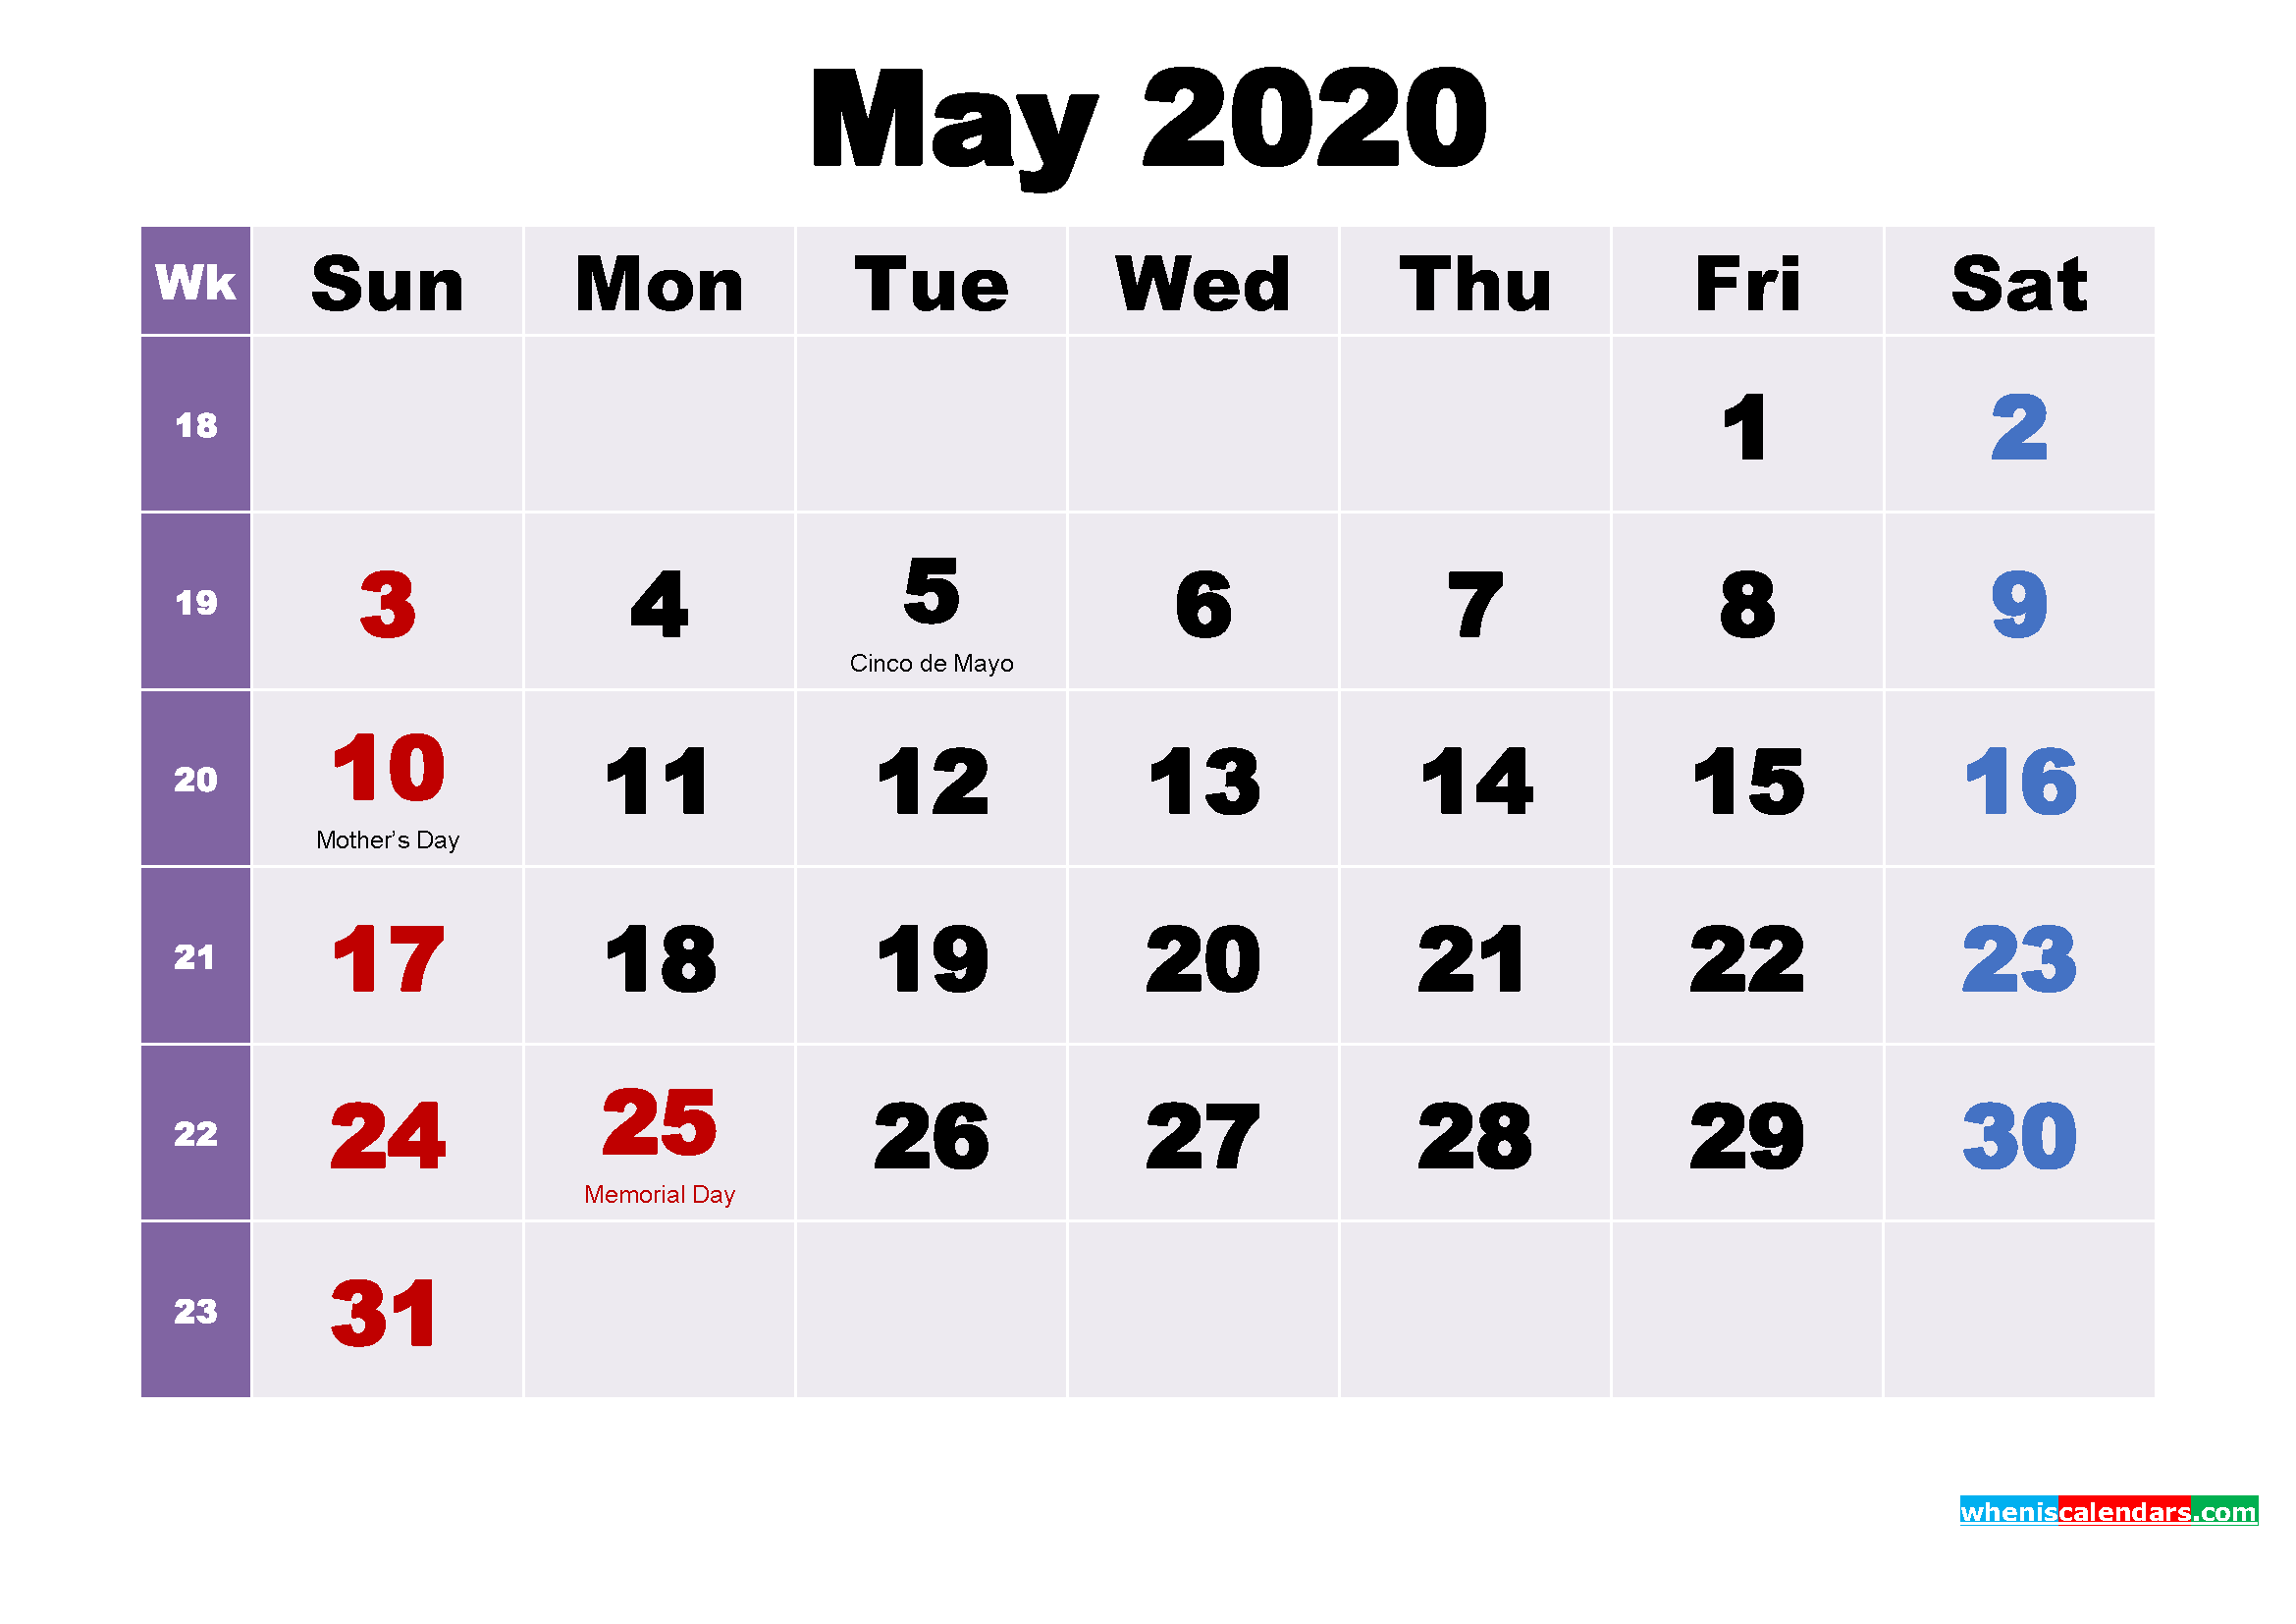 May 2020 Desktop Calendar Free Download